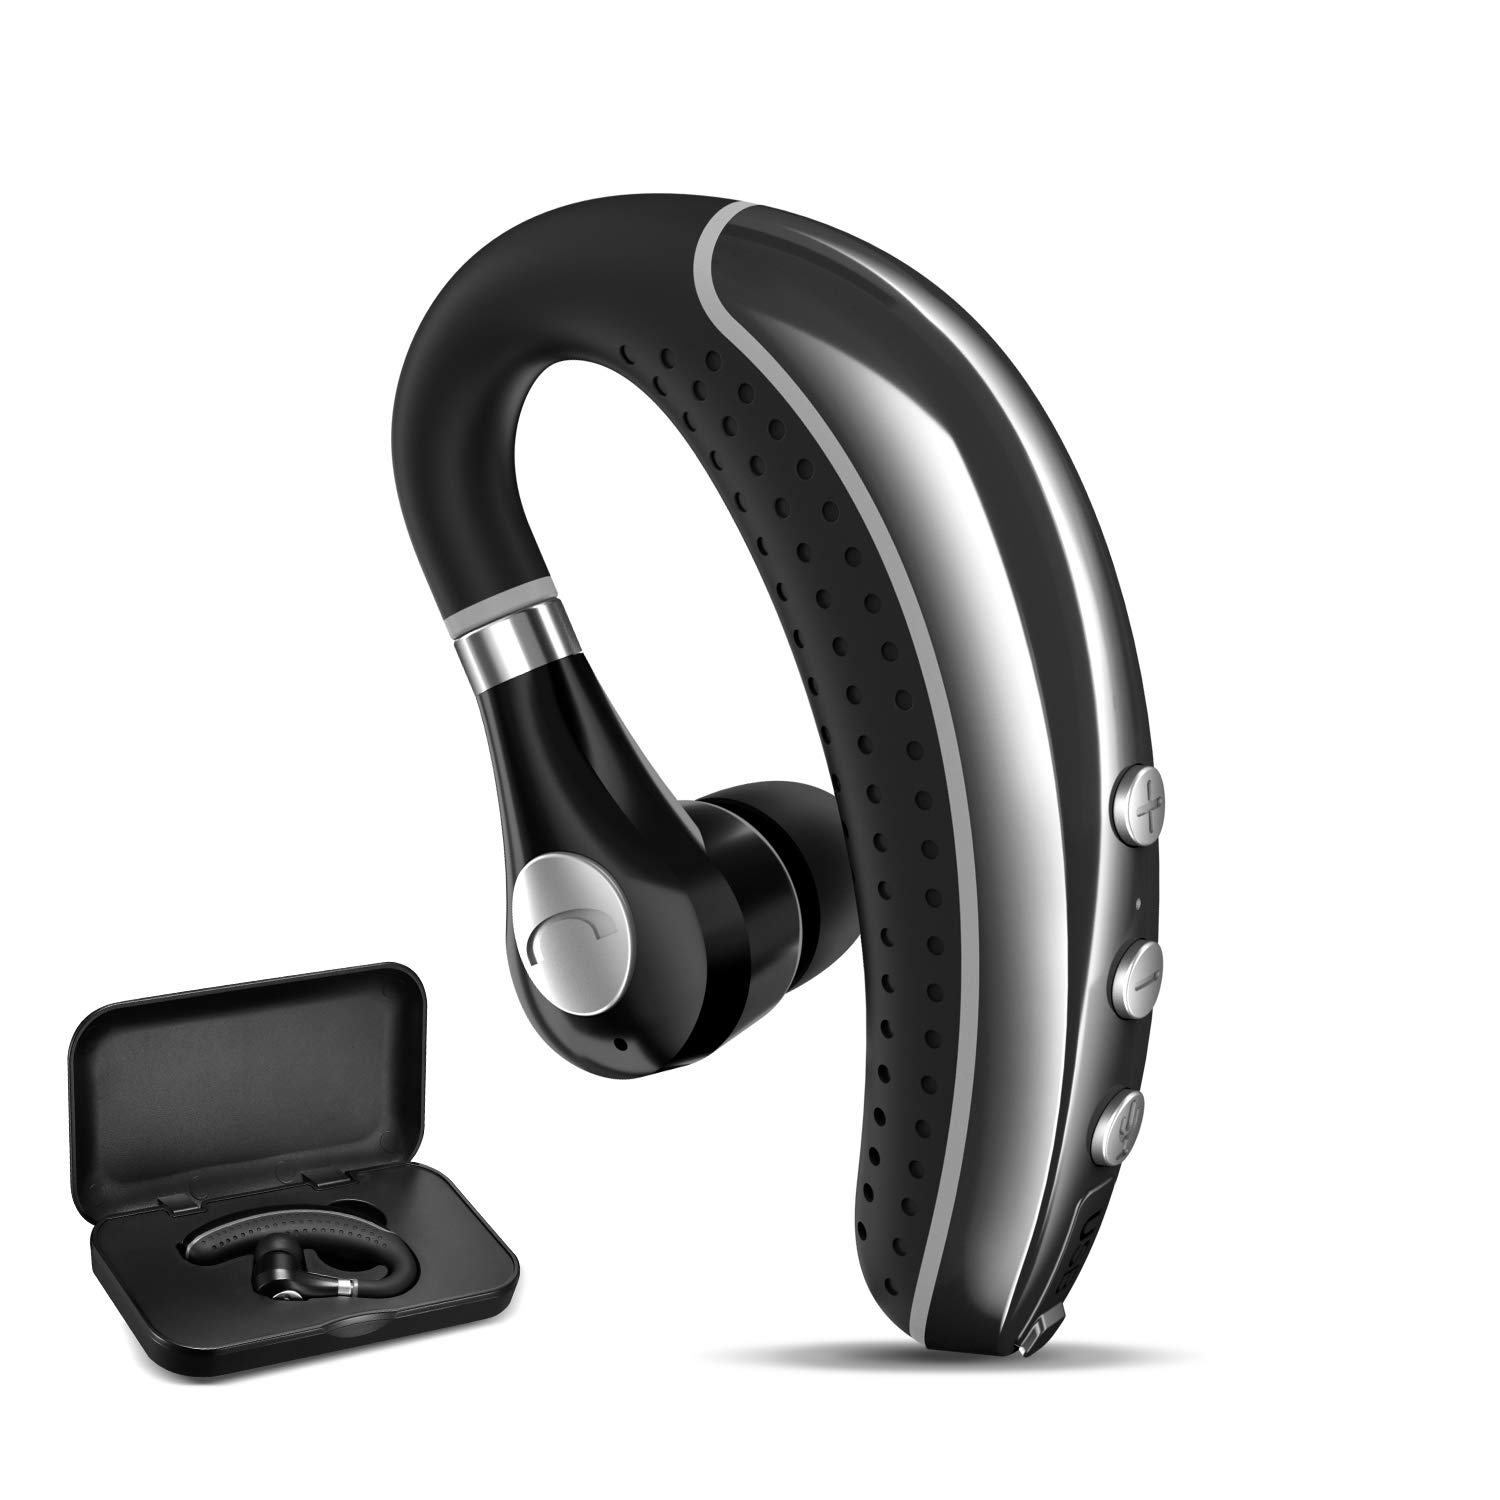 COMEXION Bluetooth Headset, Wireless Business Bluetooth Earpiece with Mic, Compatible Cell Phones for Driving/Meeting/Listening by COMEXION